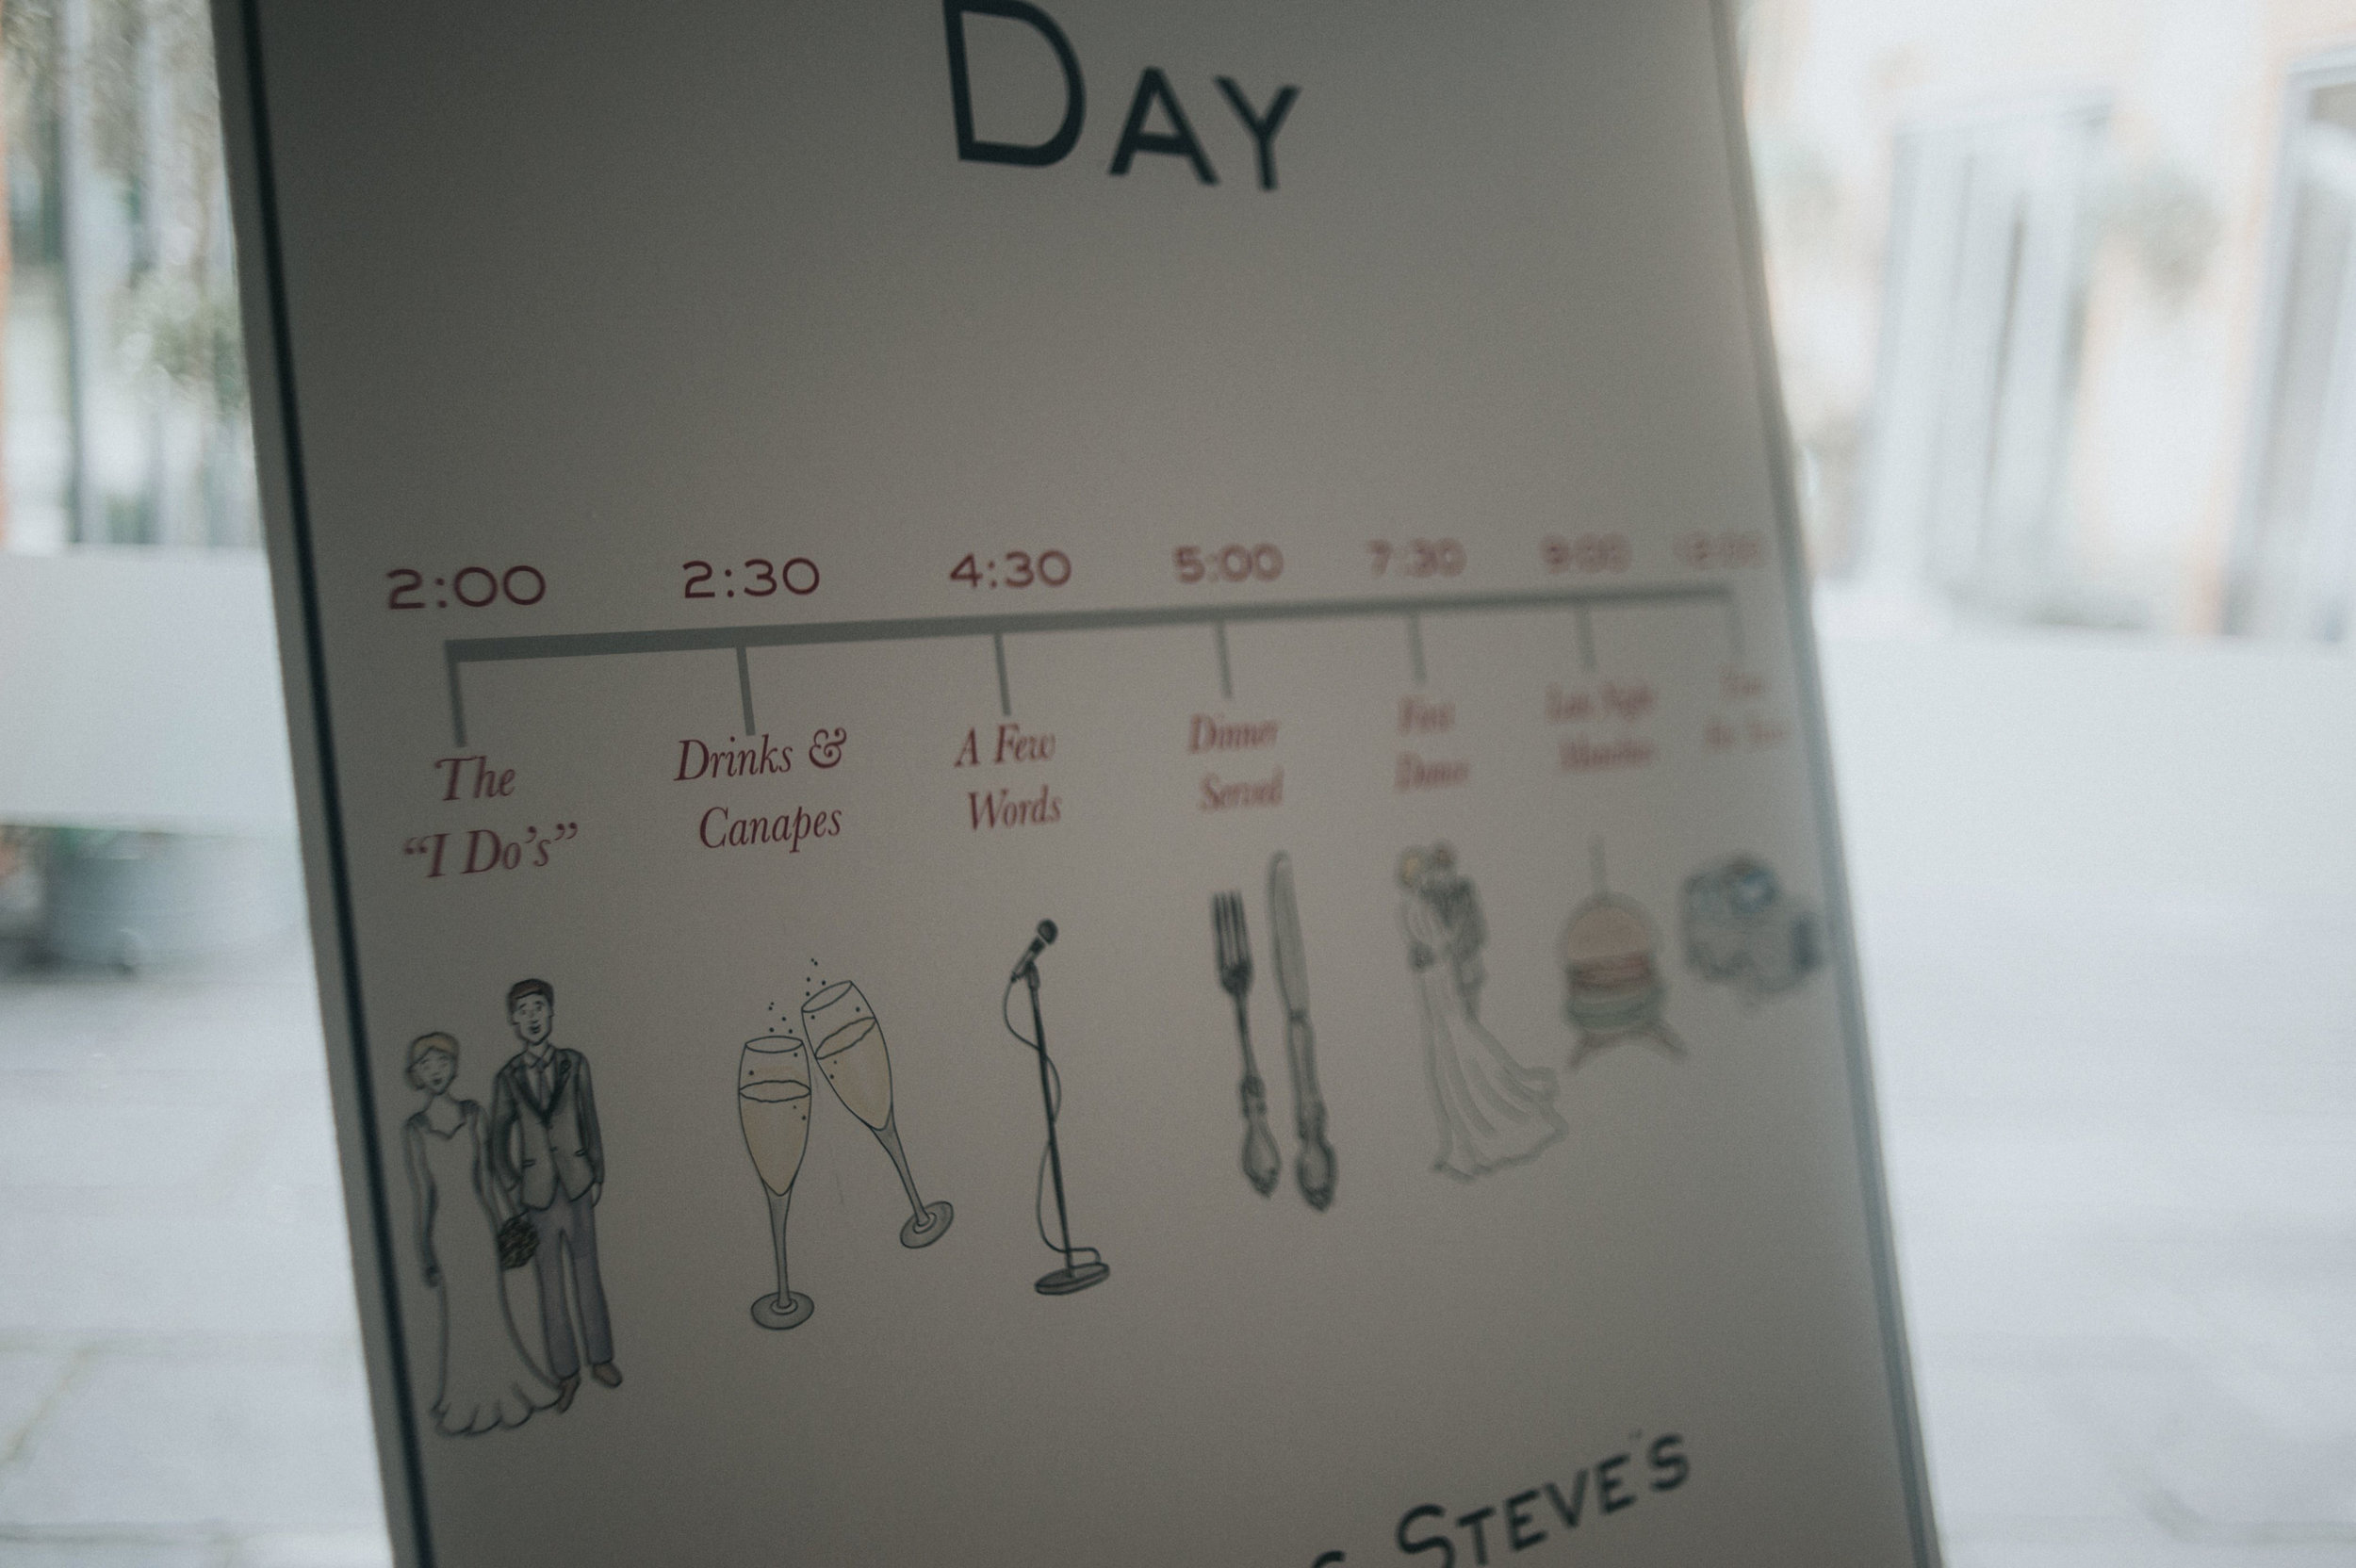 Wedding Day Timeline example.jpg